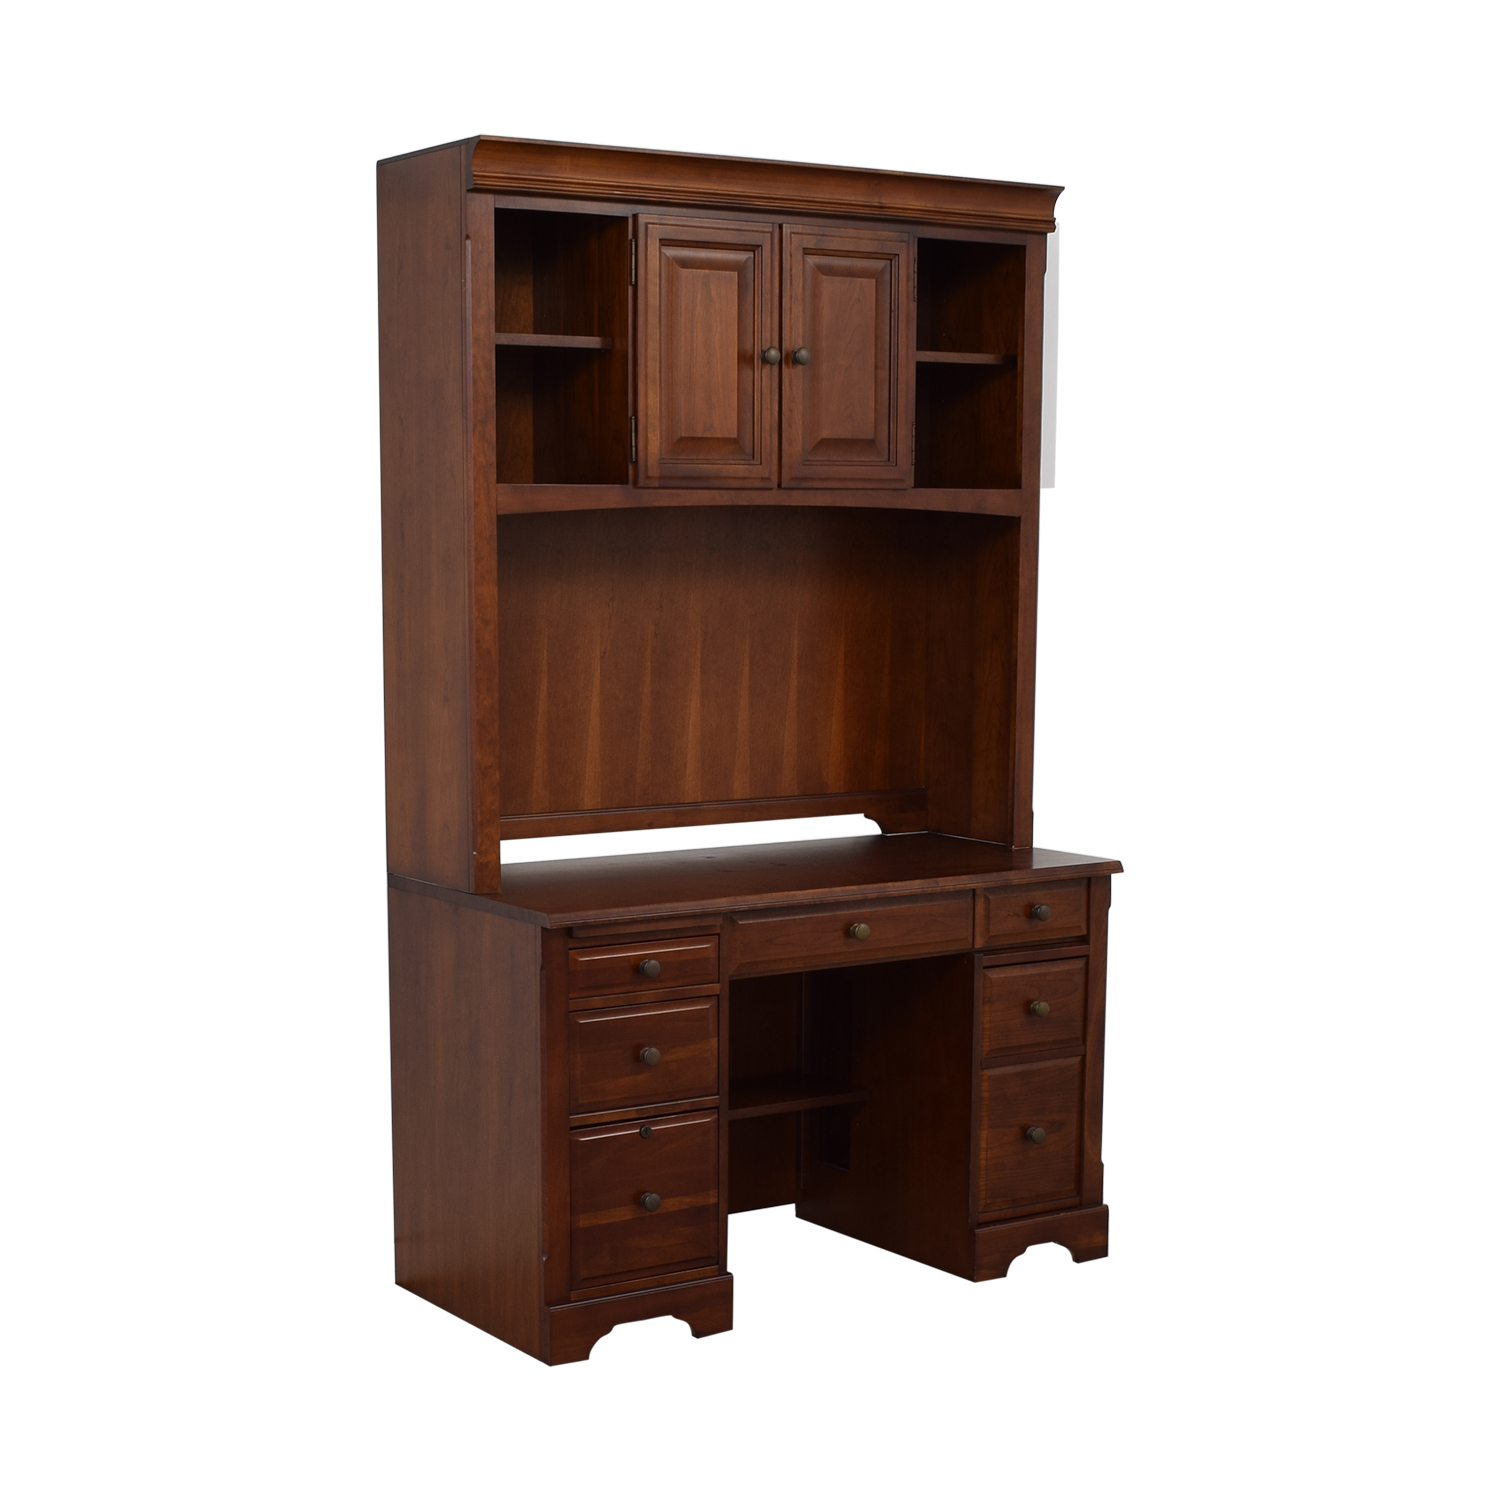 Wood Desk with Hutch coupon